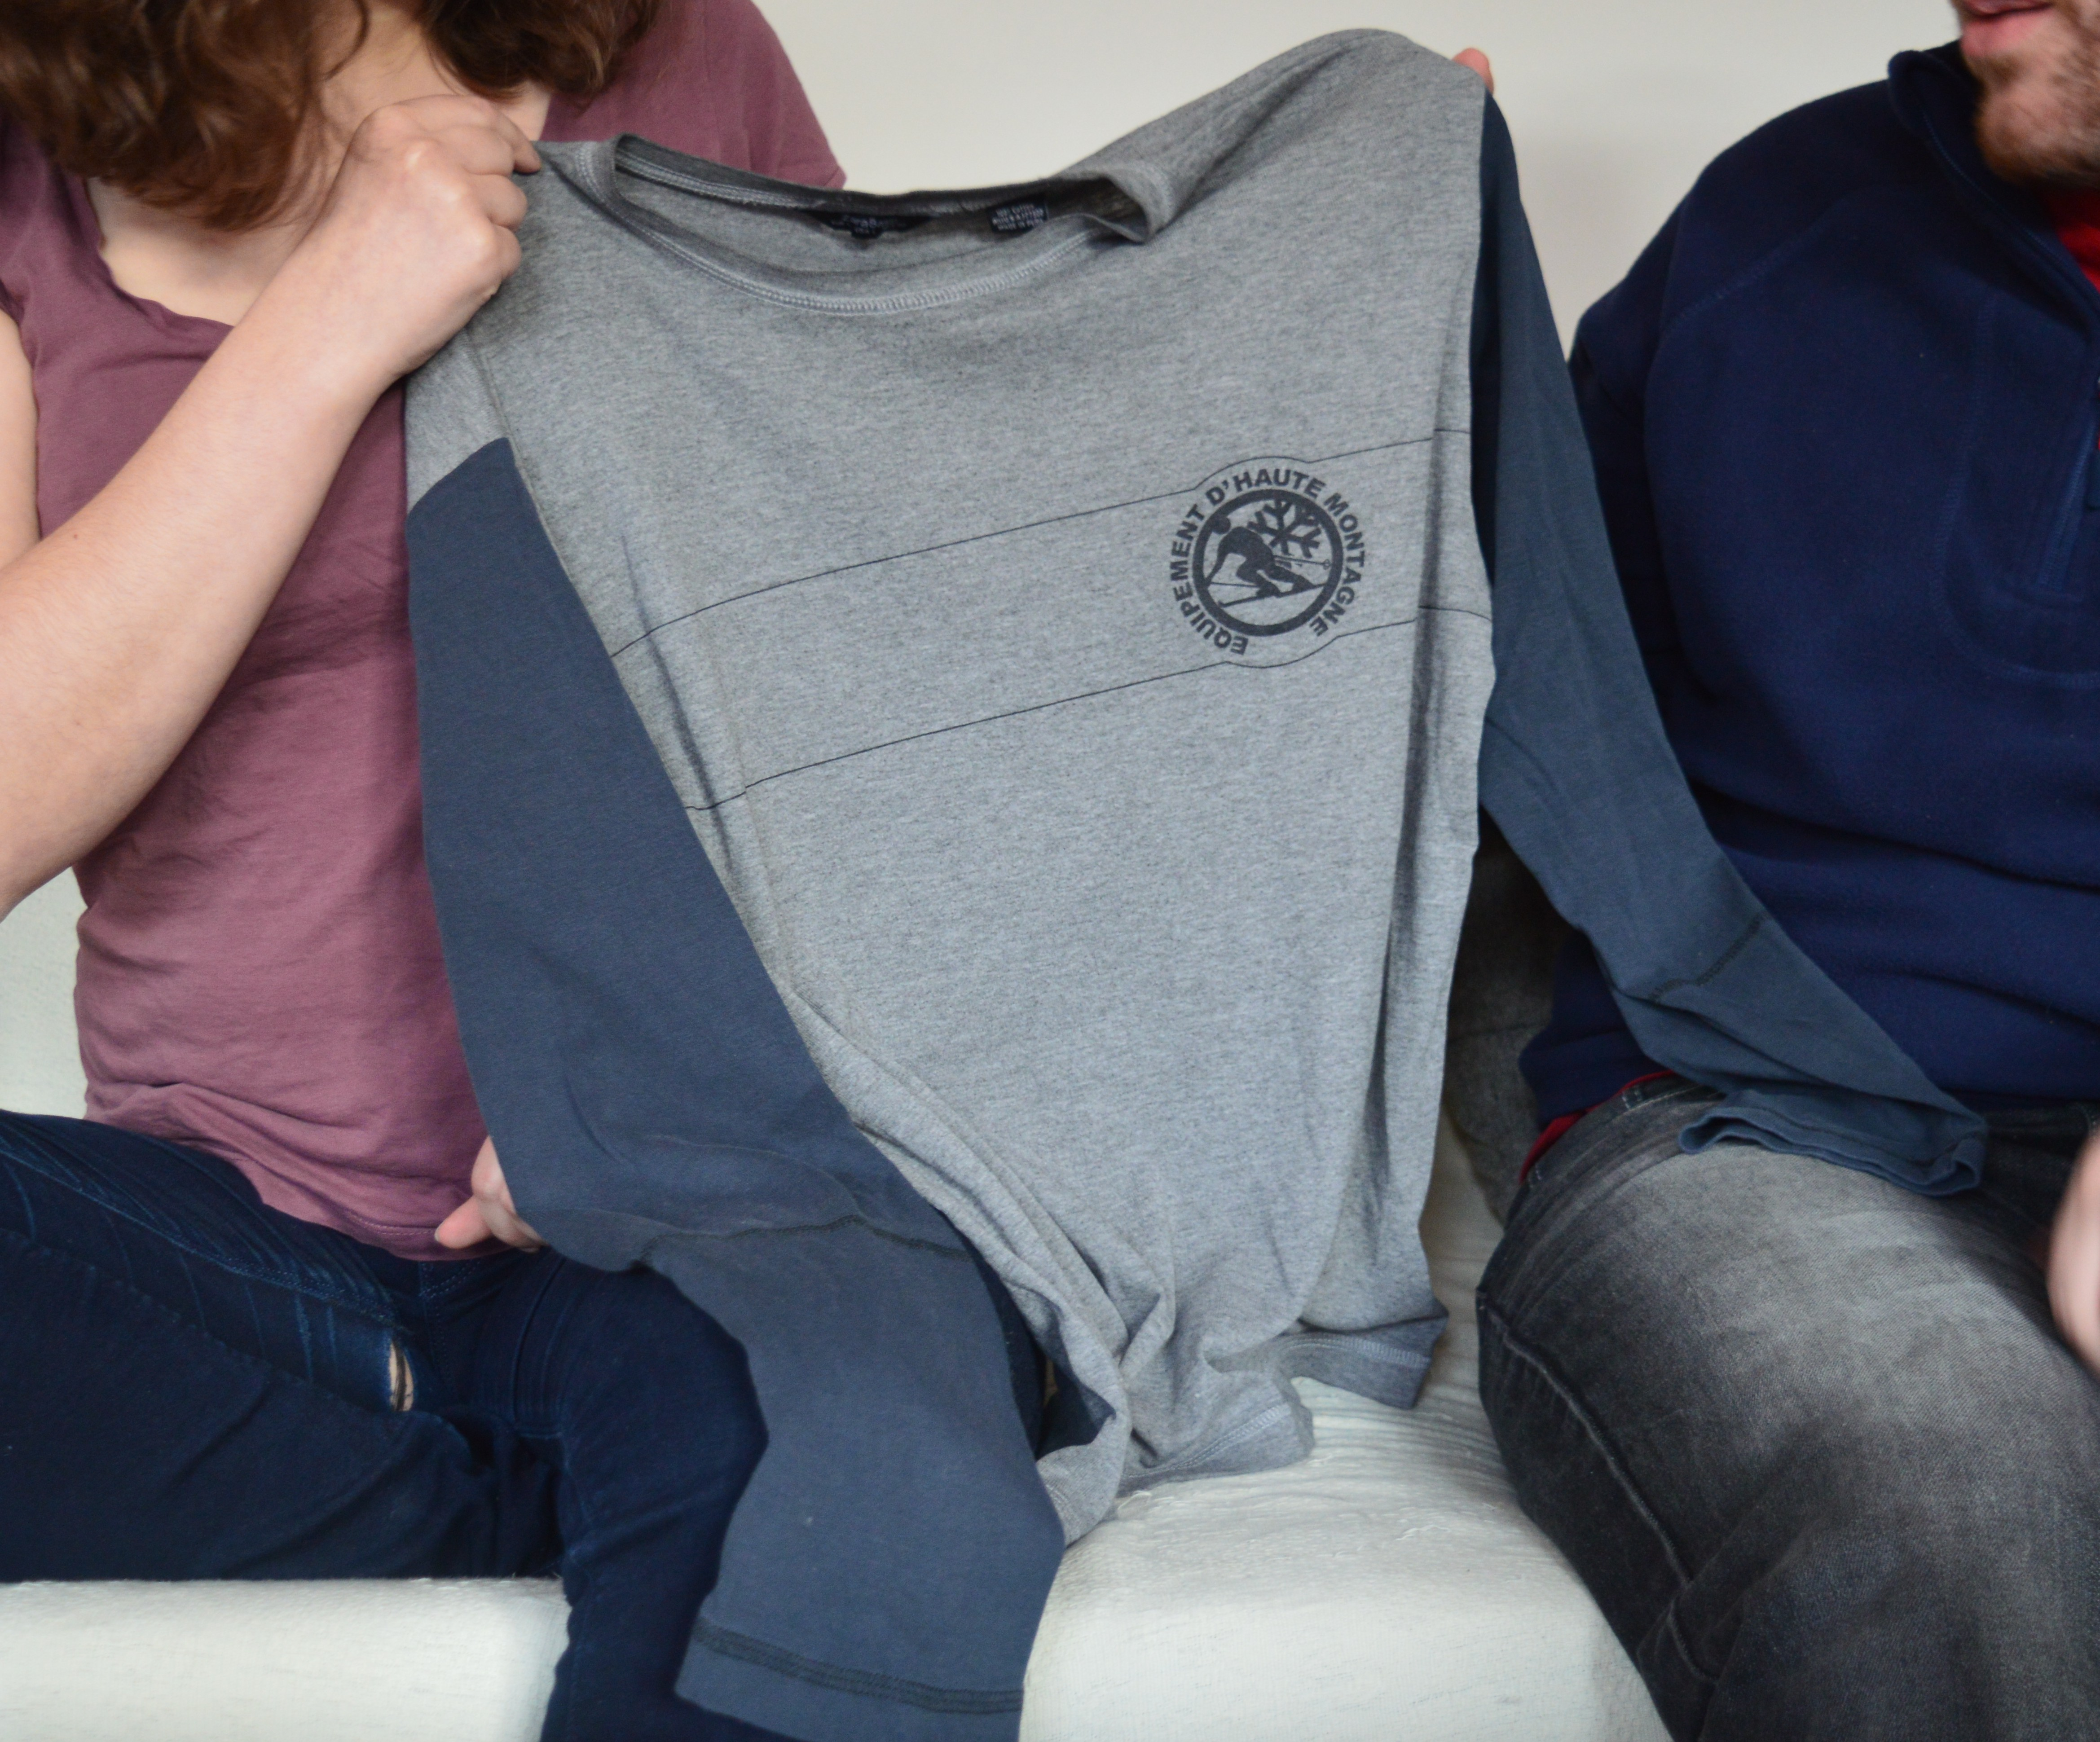 When he lost a bet, Agnes asked for one of Gabriel's T-Shirts as her prize. She wore the T-shirt as a cosy reminder when he wasn't around.